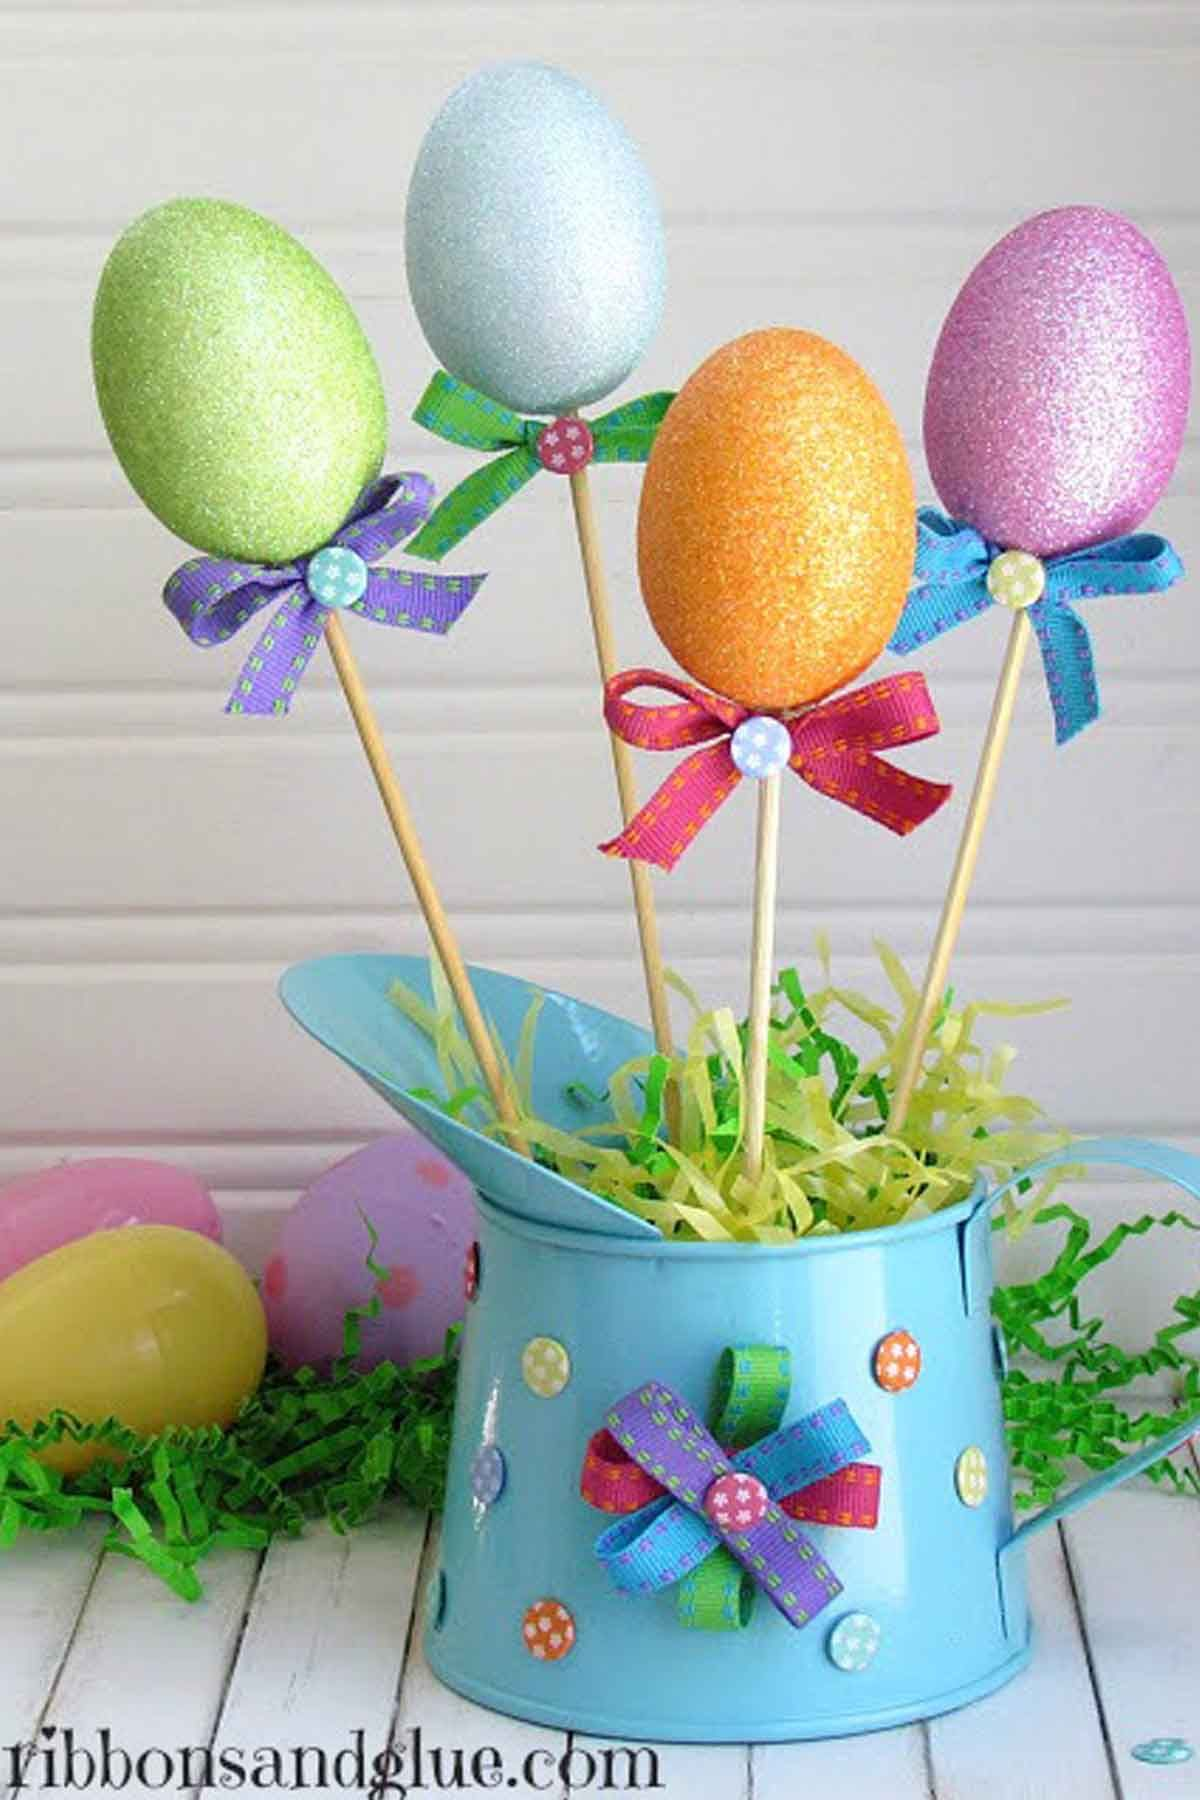 15 dollar store crafts that double as easter decor solutioingenieria Gallery